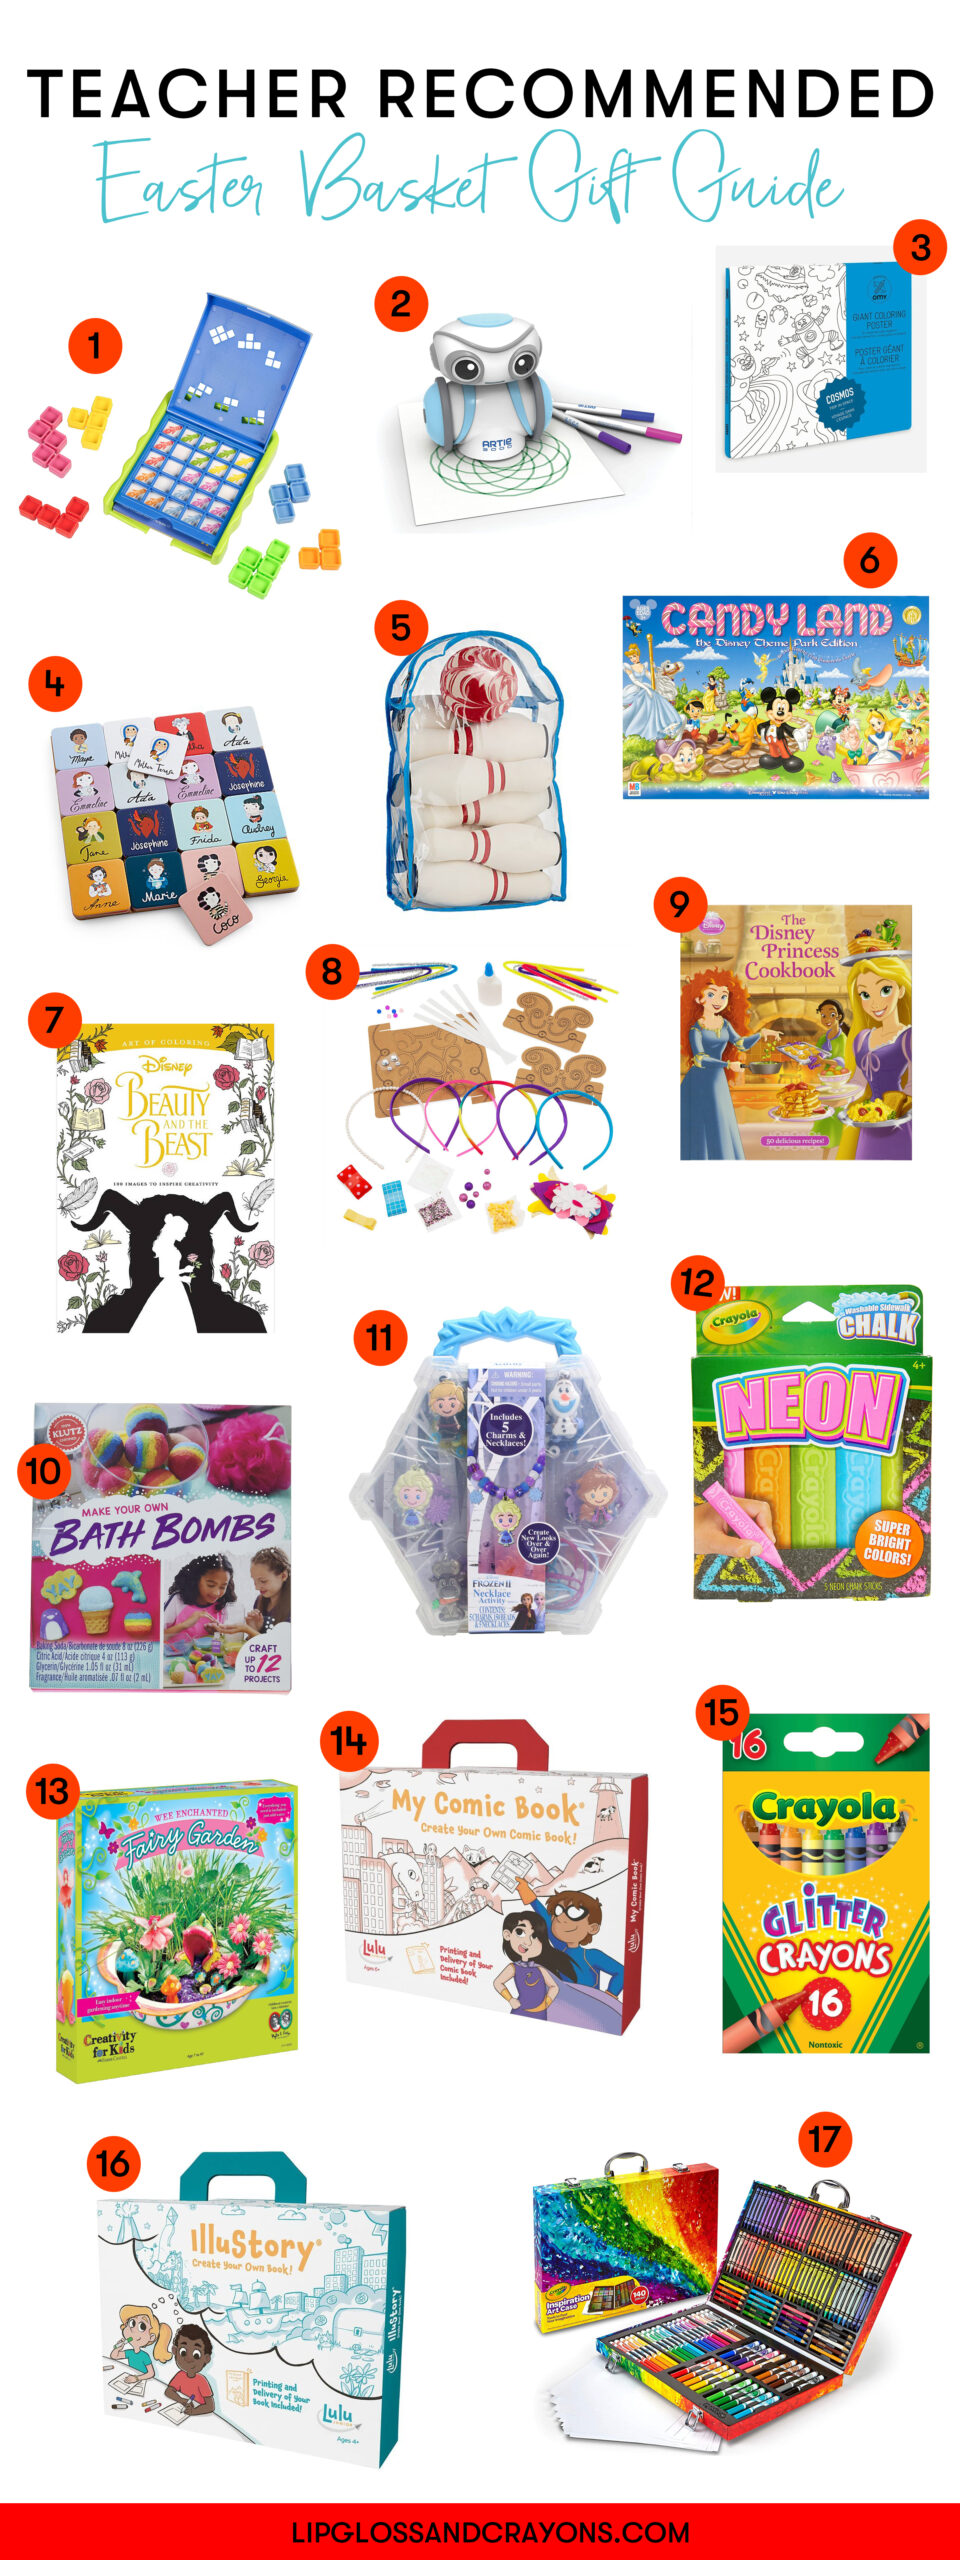 Trying to figure out what to do for Easter Baskets? These gift ideas are great learning tools that you'll be happy to have on hand!